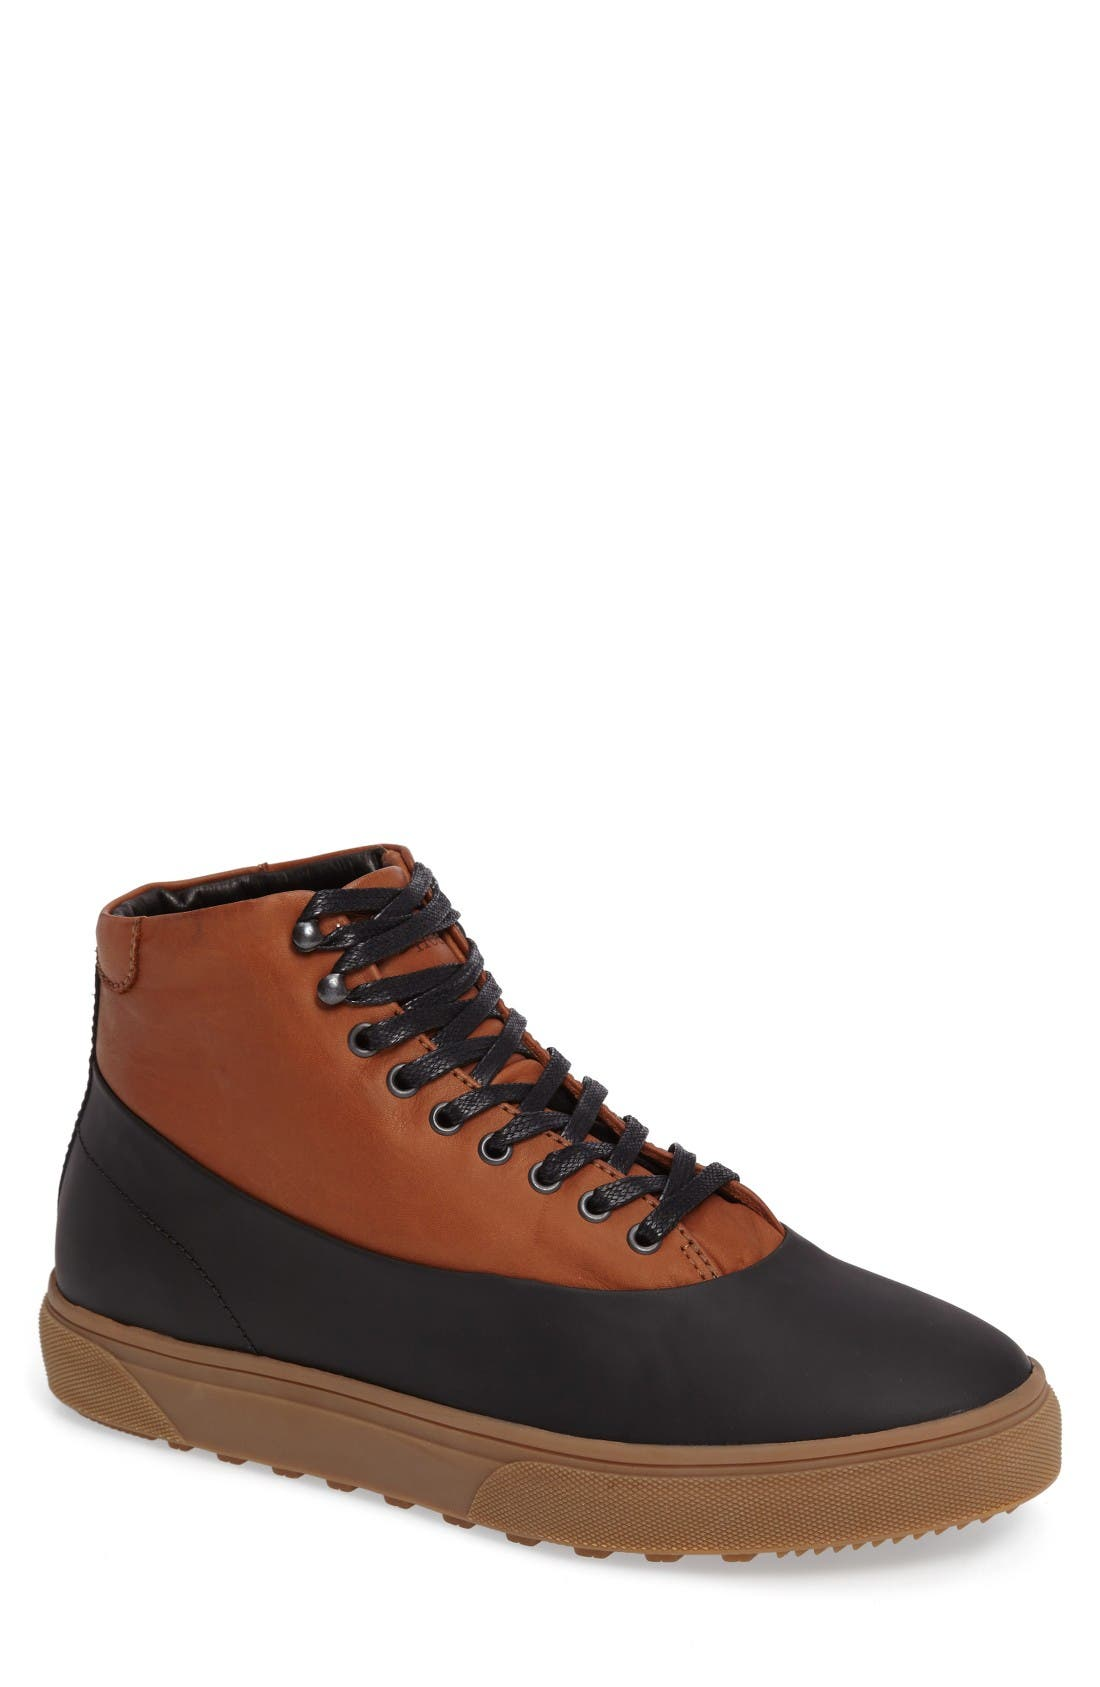 Alternate Image 1 Selected - Hood Rubber Wayland High Top Sneaker (Men)